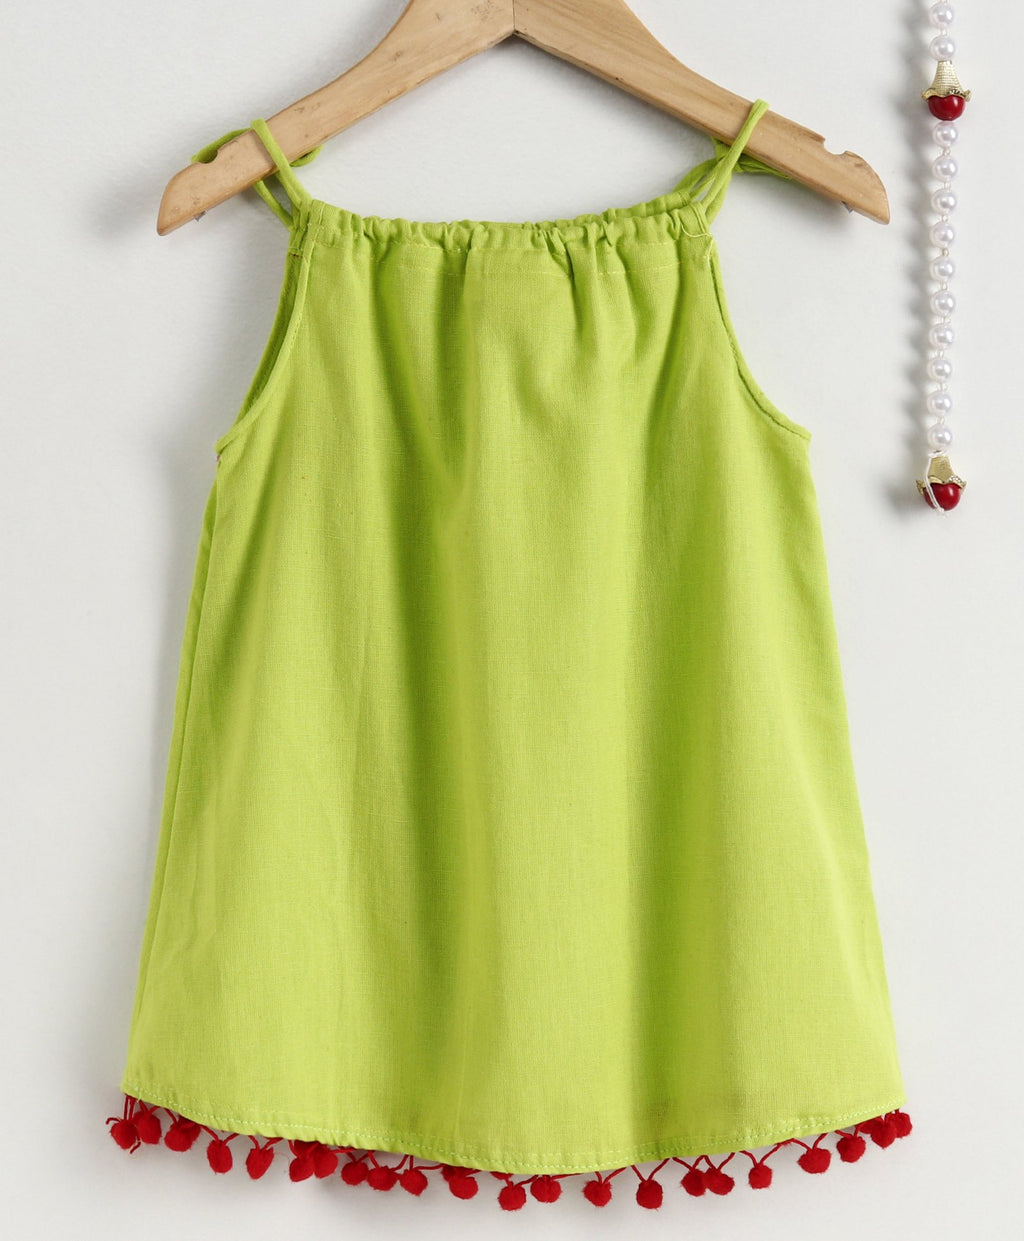 BownBee Infant Adjustable Cotton Jhabla- Green